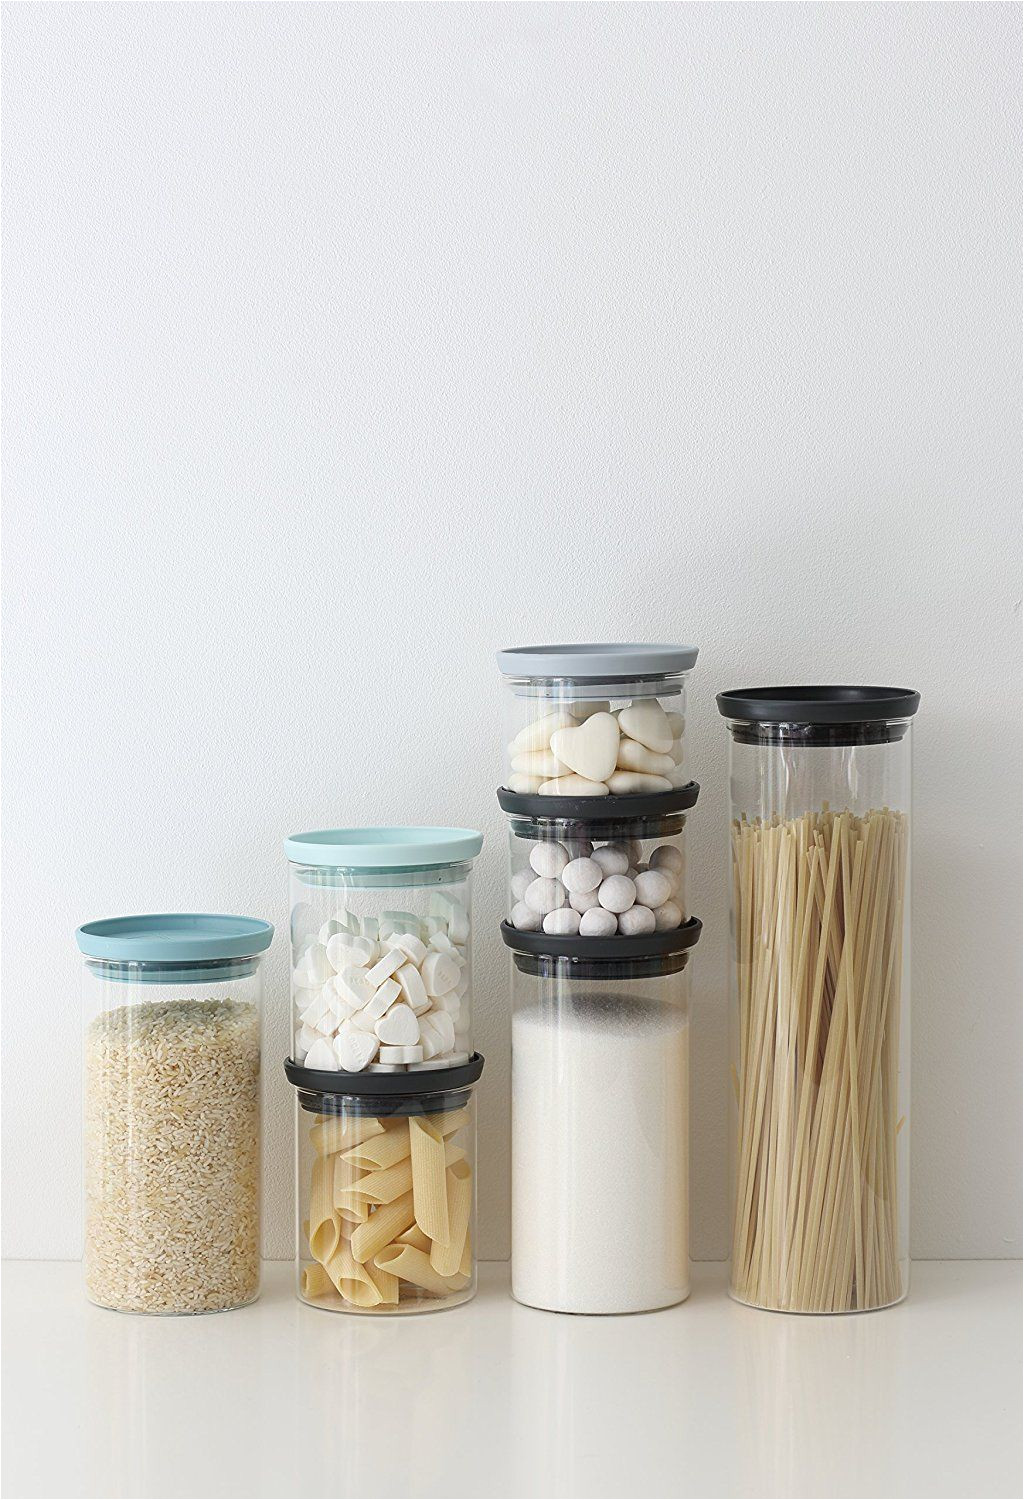 amazon com brabantia stackable glass food storage containers set of 3 kitchen dining